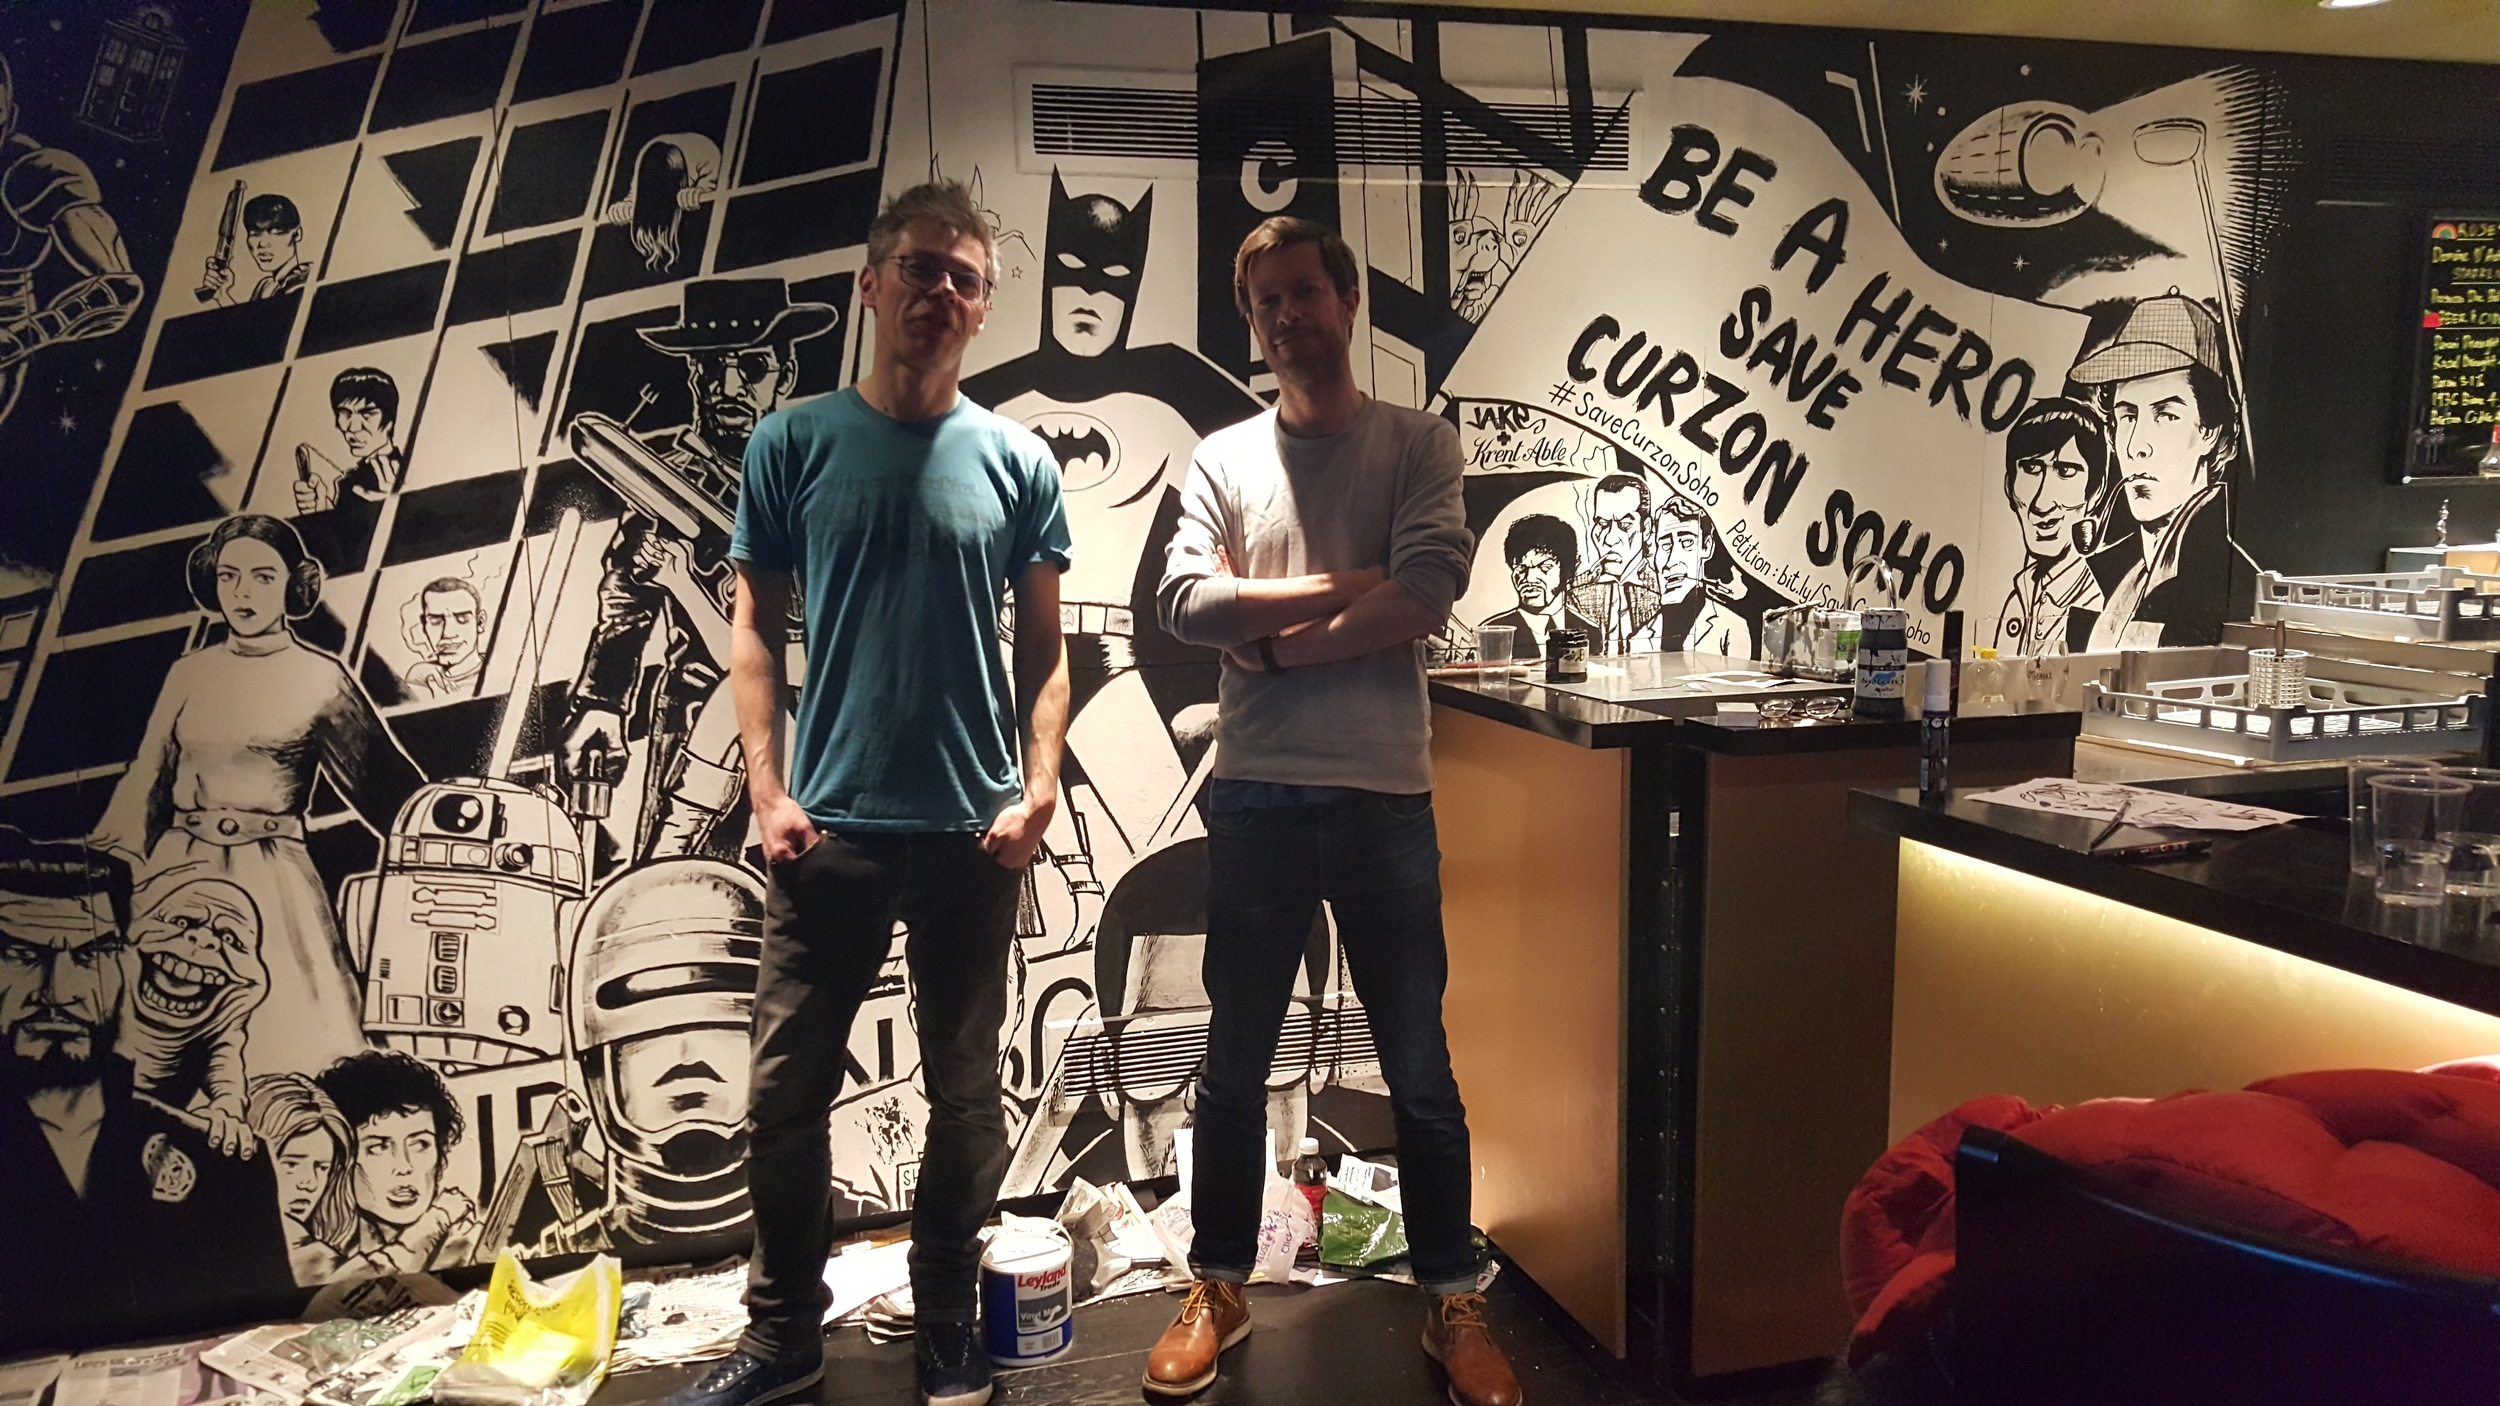 Artists  Krent Able  and  JAKe  at work on Save Curzon Soho mural - photo by Lilly Gallafent  @LilN1